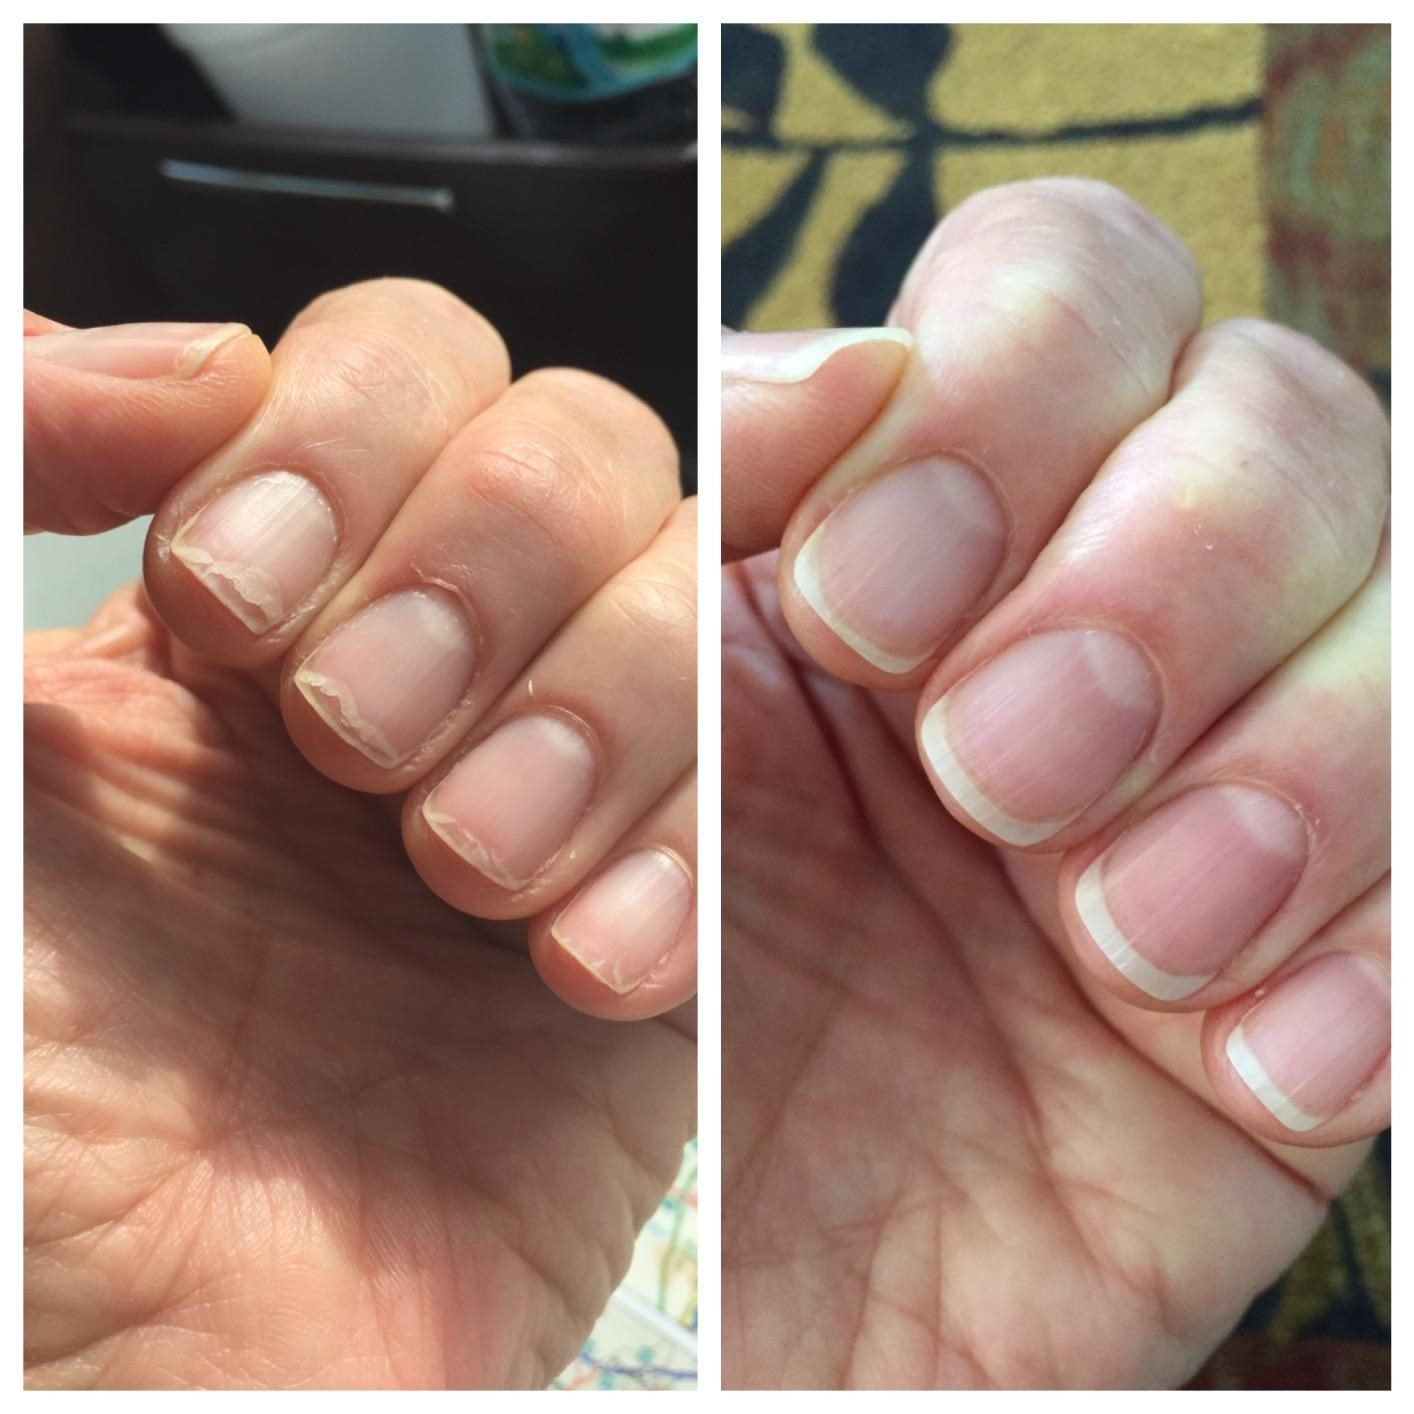 left: peeling nails right: nails with no more peeling